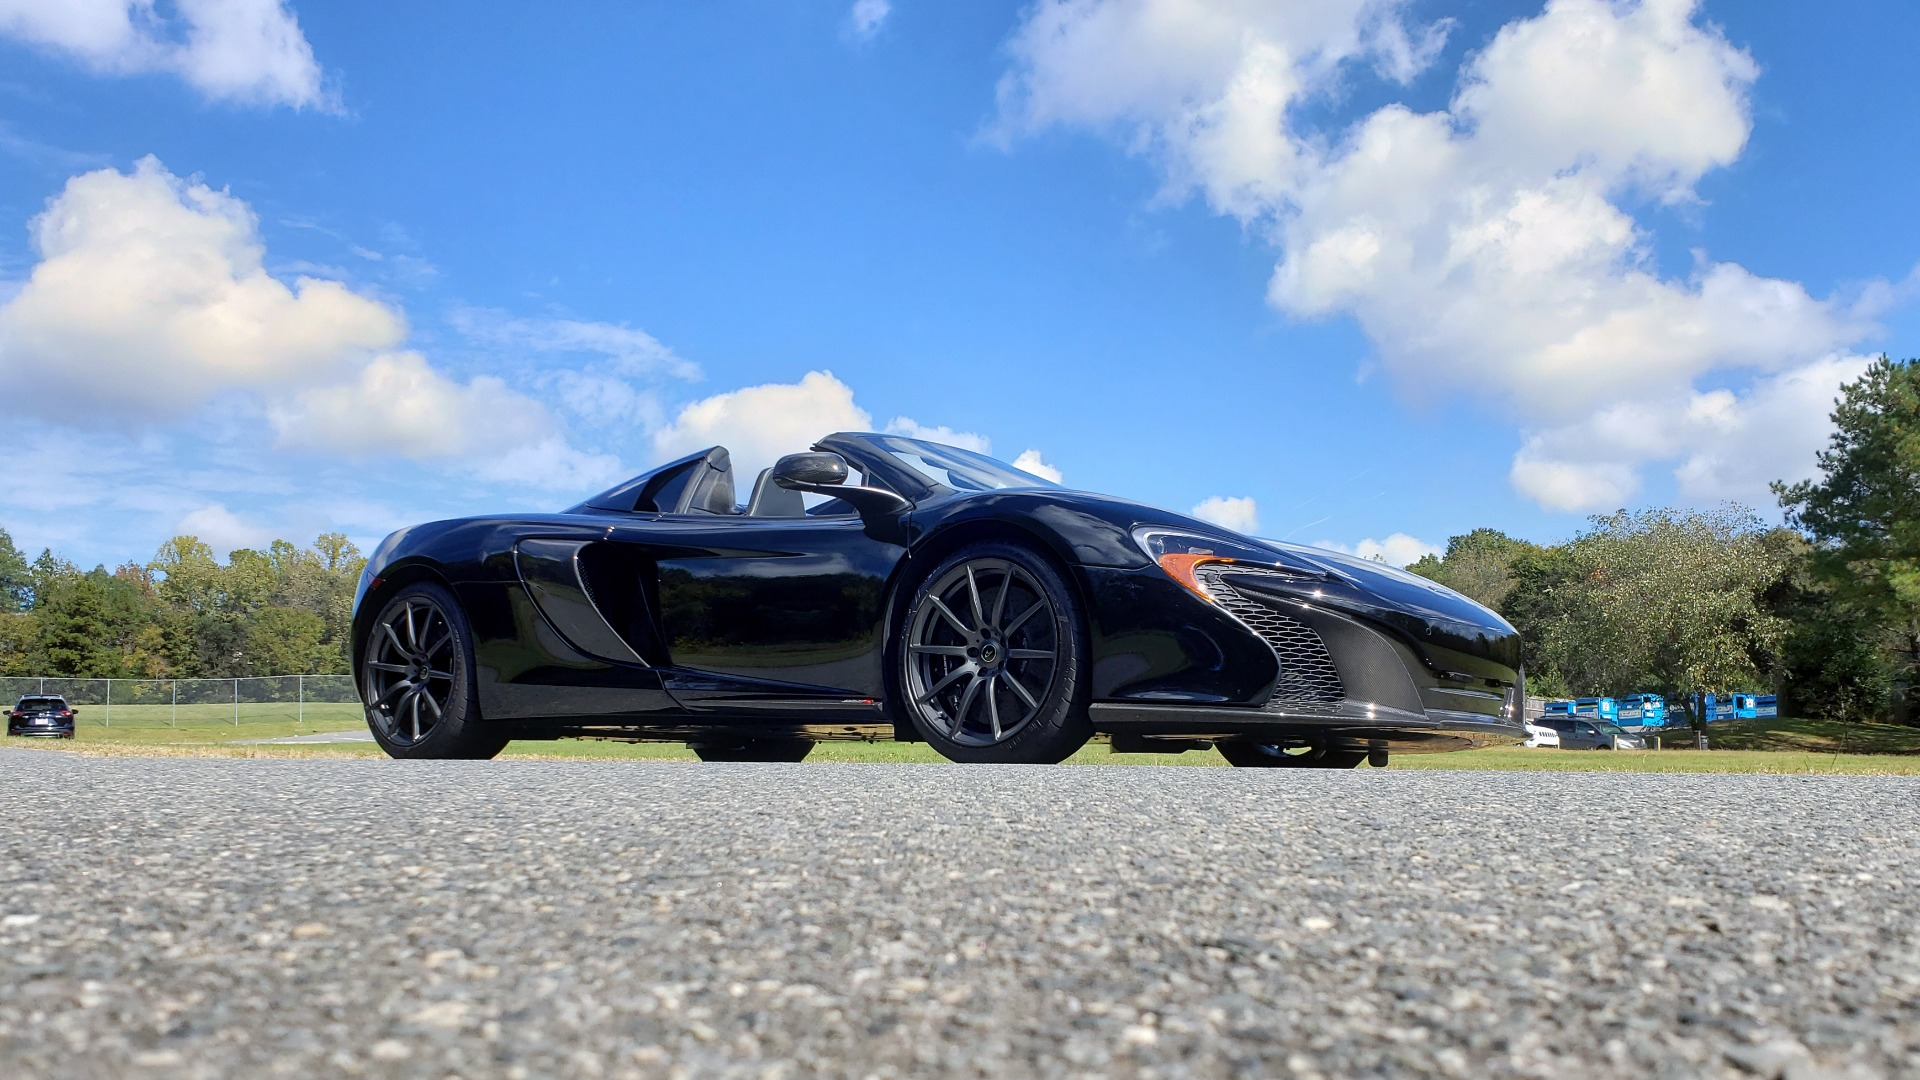 Used 2016 McLaren 650S SPIDER / 641HP / PARK SENSORS / LOW MILES / 1-OWNER for sale Sold at Formula Imports in Charlotte NC 28227 14